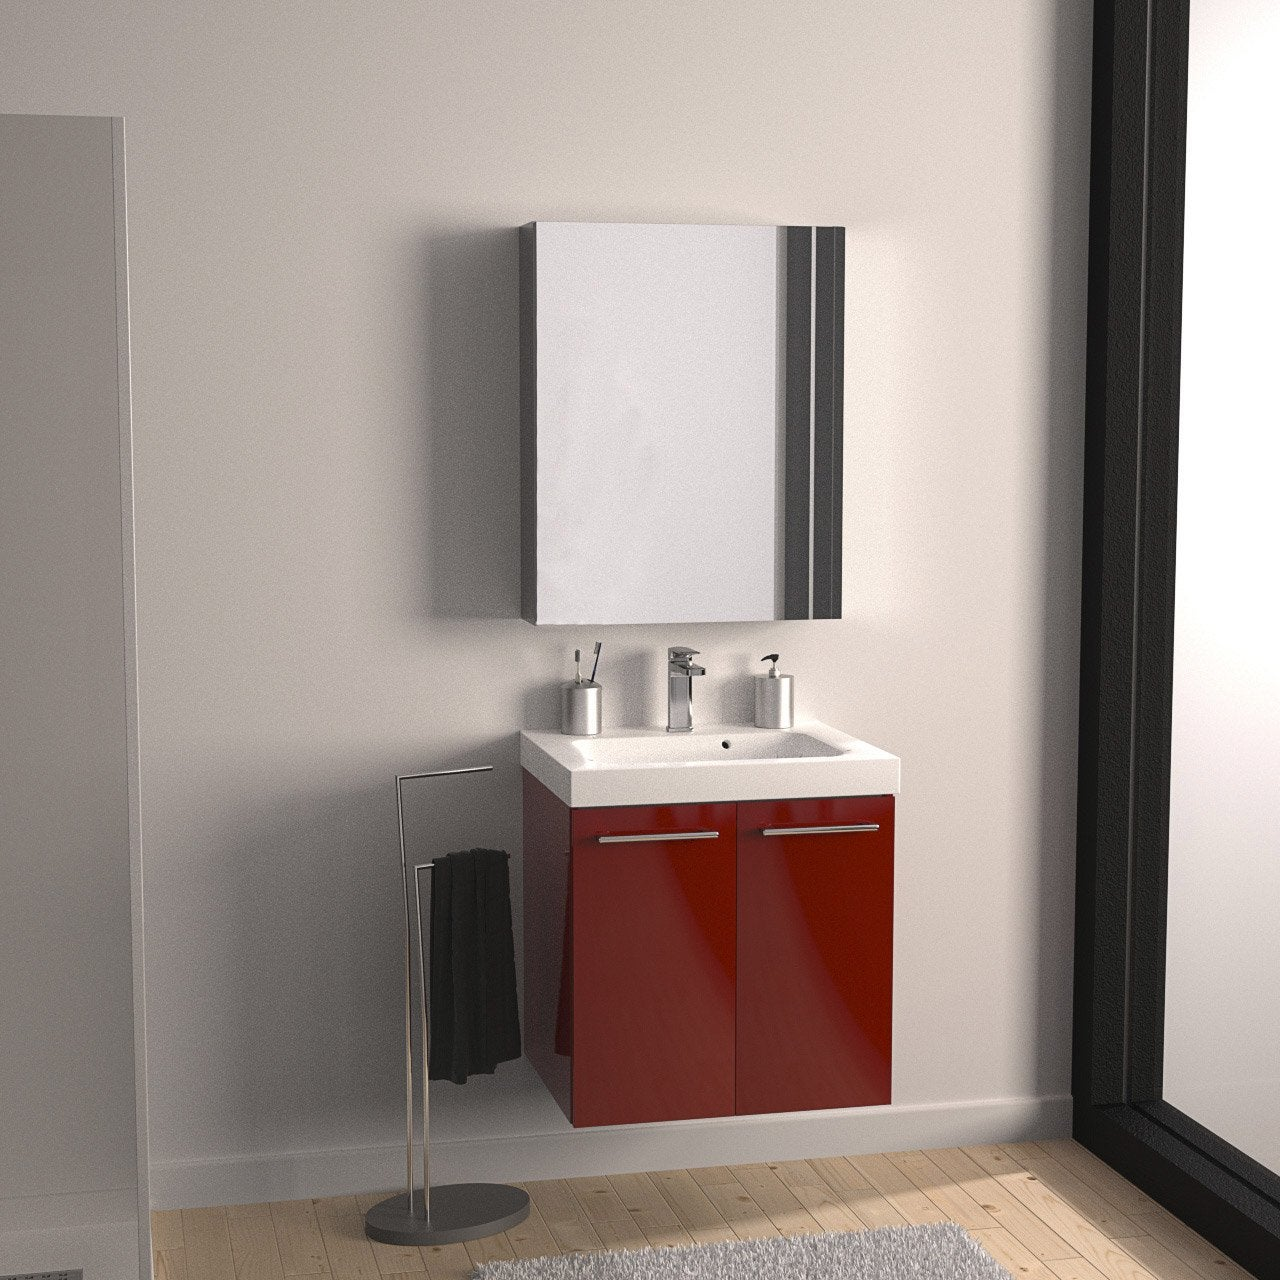 Meuble vasque x x cm rouge sensea remix leroy merlin for Ambiance salle de bain leroy merlin